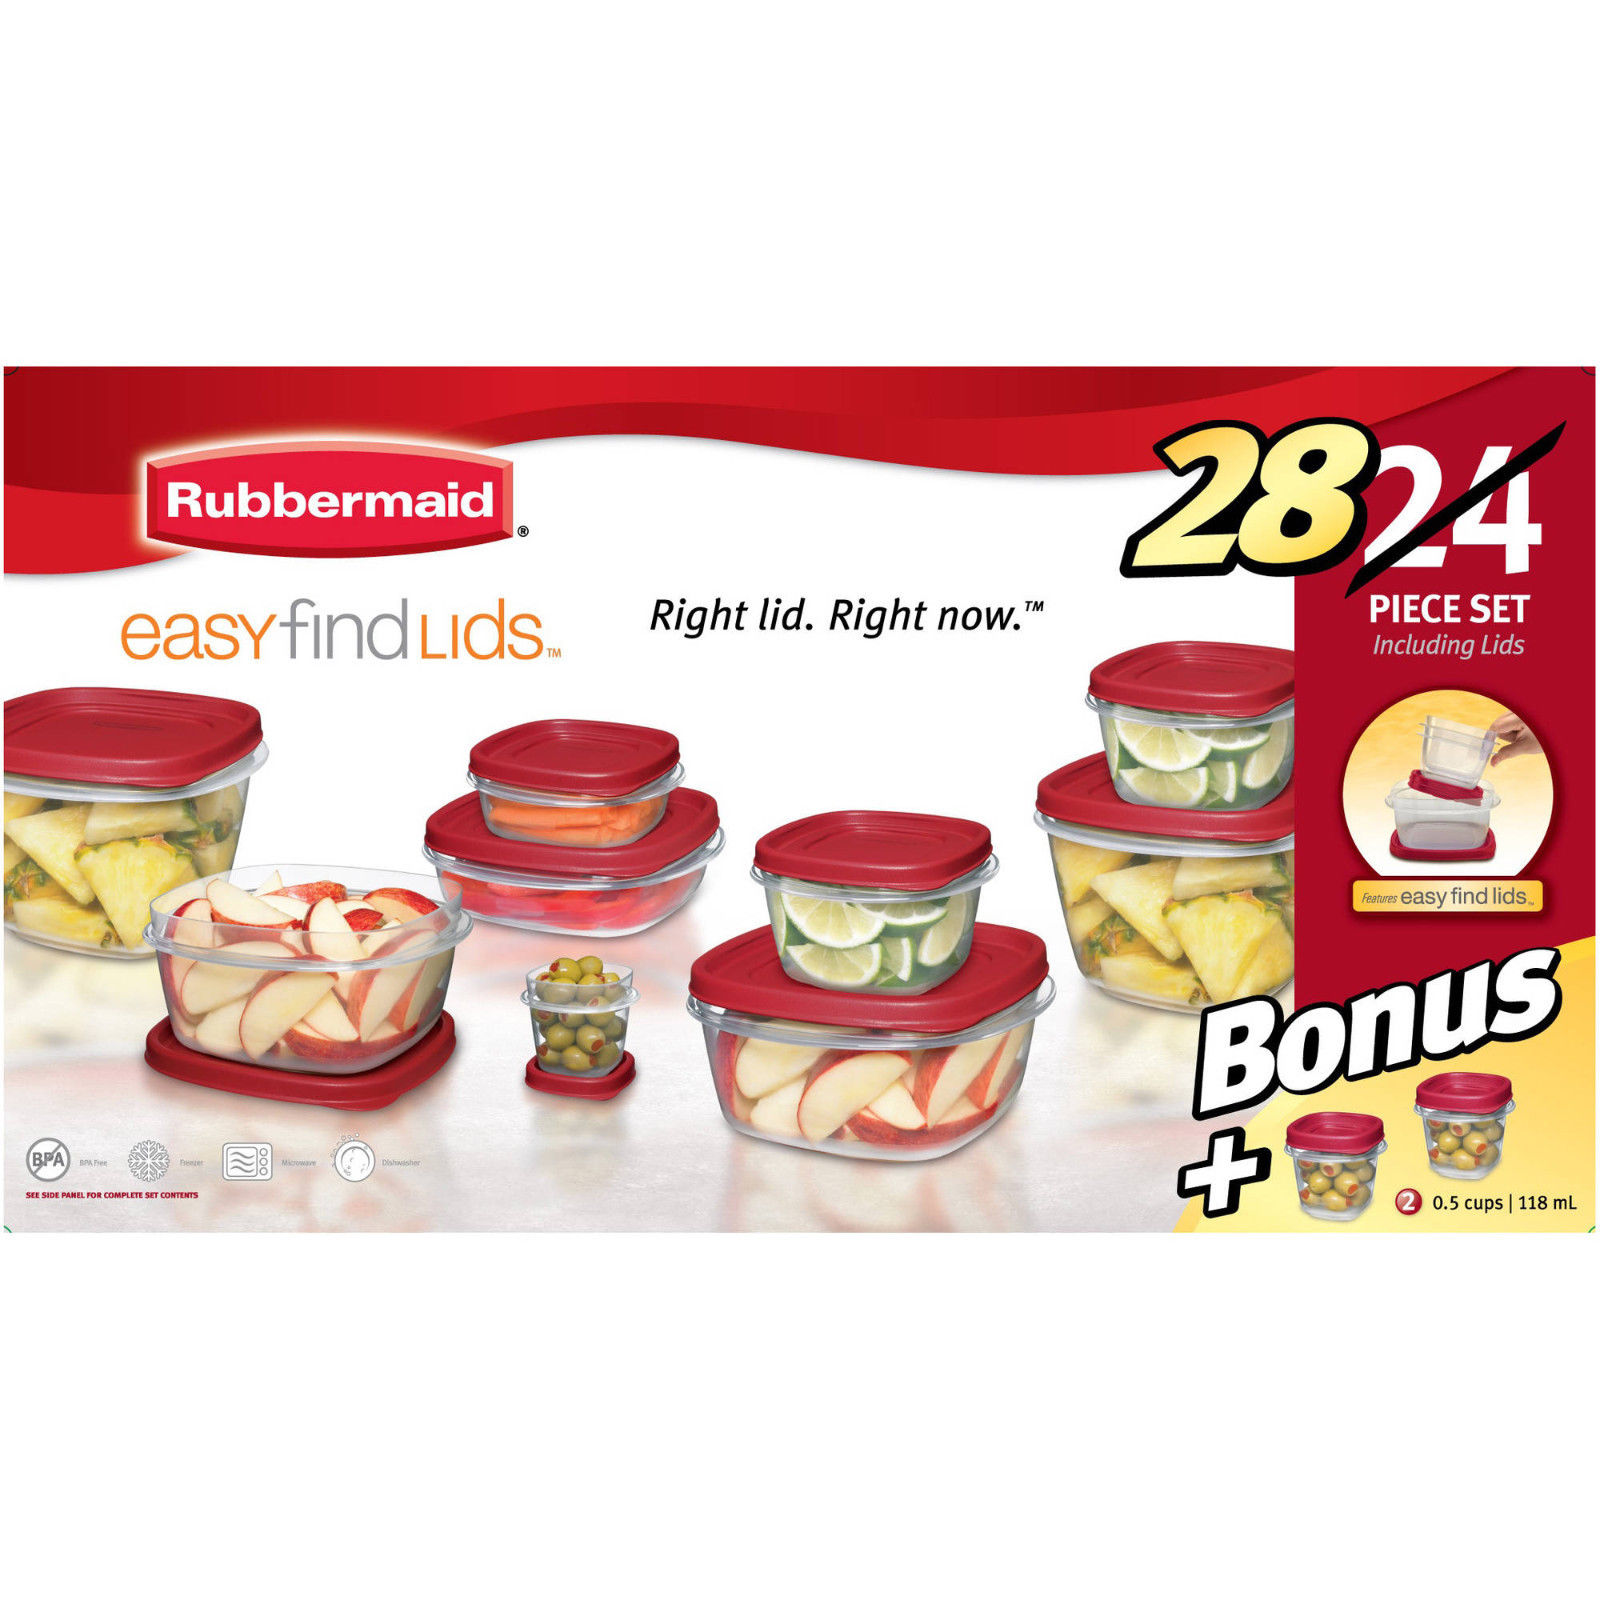 Rubbermaid Easy Find Lids Food Storage Container, 28-Piece Bonus Set Red New 1